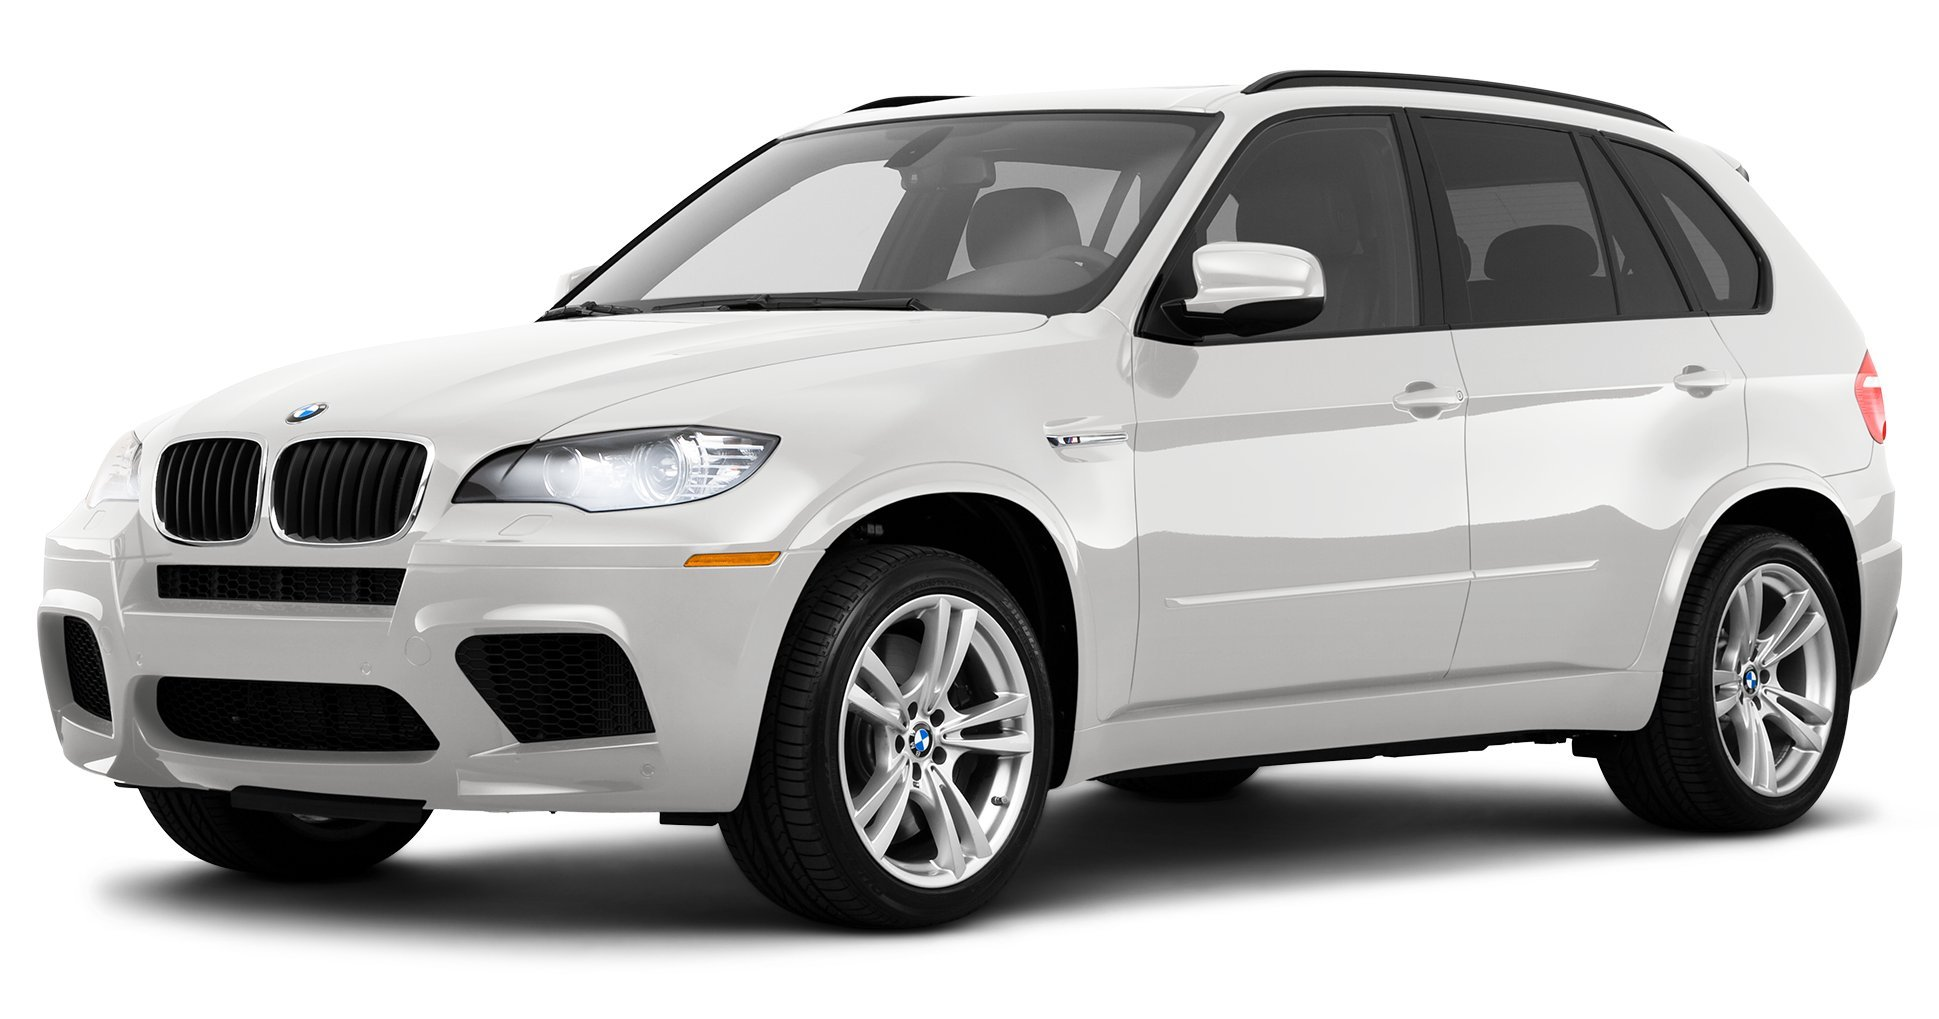 2010 bmw x5 reviews images and specs vehicles. Black Bedroom Furniture Sets. Home Design Ideas